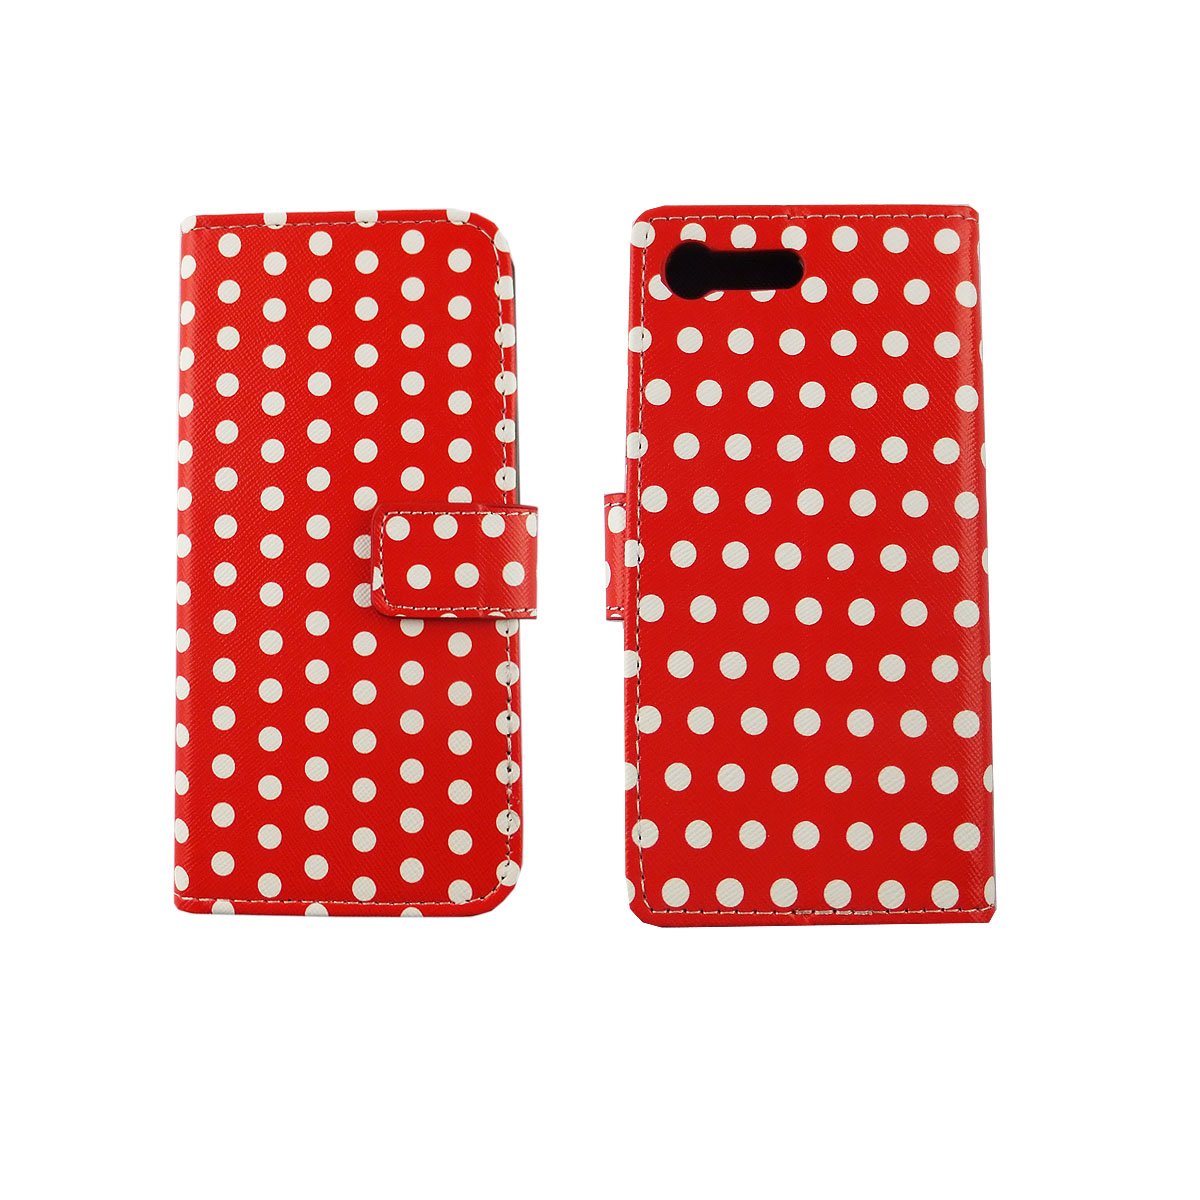 handyh lle tasche f r handy sony xperia x compact polka. Black Bedroom Furniture Sets. Home Design Ideas